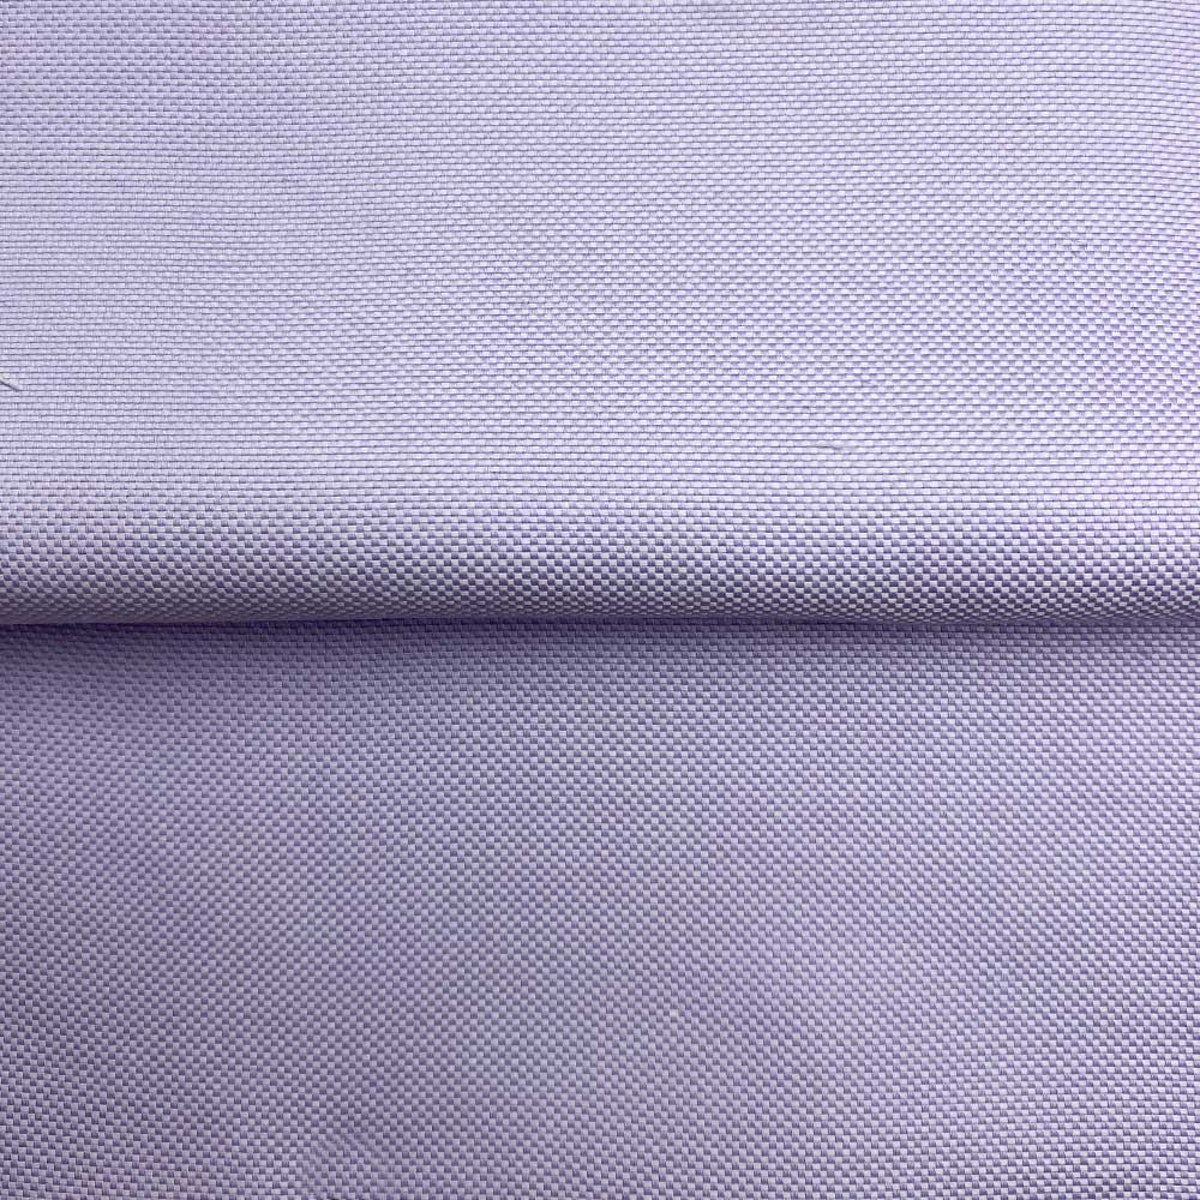 InStitchu Shirt Fabric 93